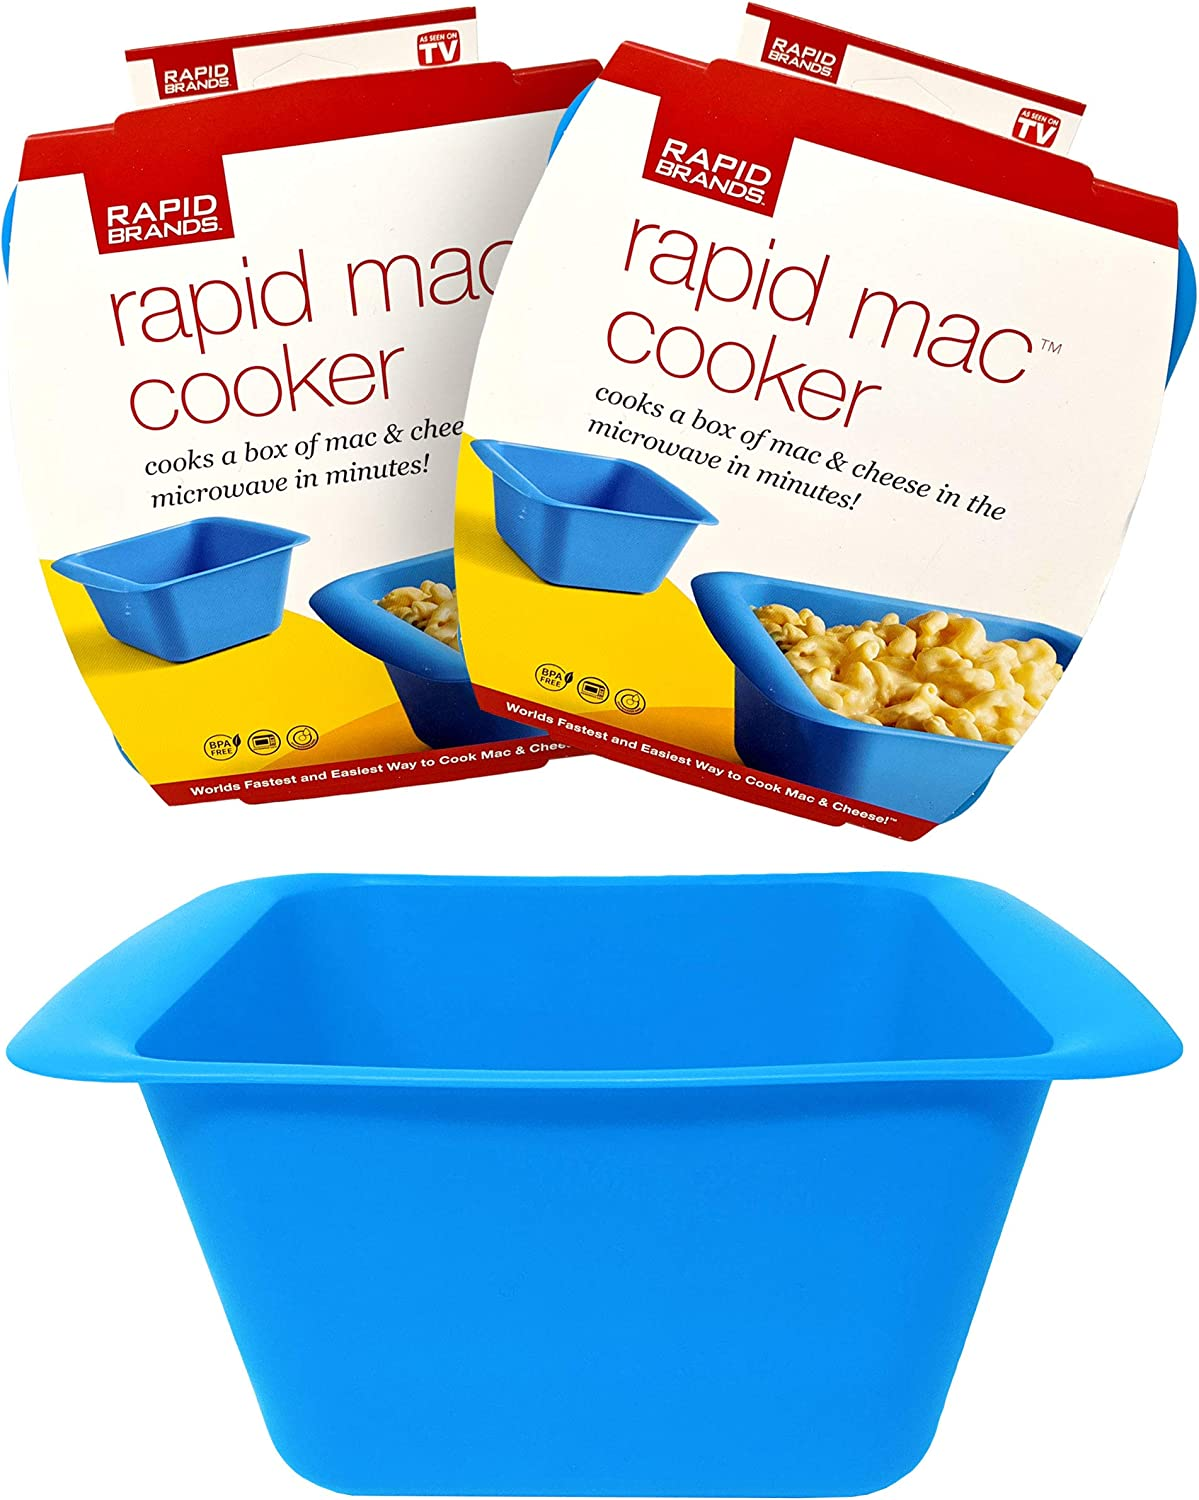 Rapid Mac Cooker | Microwave Macaroni & Cheese in 5 Minutes | Perfect for Dorm, Small Kitchen, or Office | Dishwasher-Safe, Microwaveable, & BPA-Free (Blue, 2 pack)